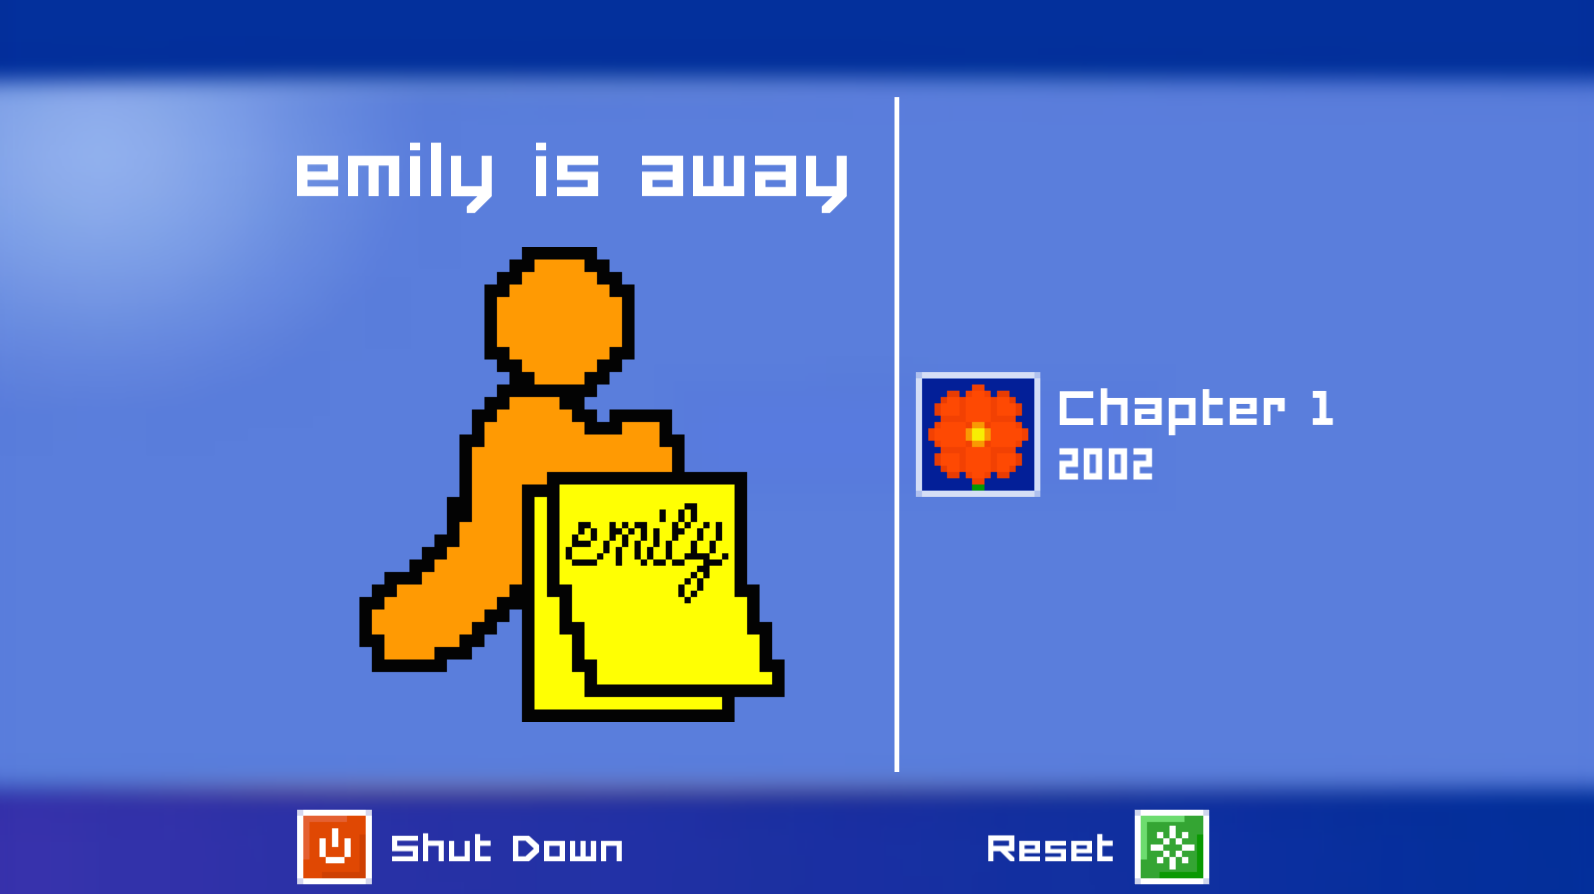 Emily is Away pays homage to the old style of instant messaging many of us grew up with